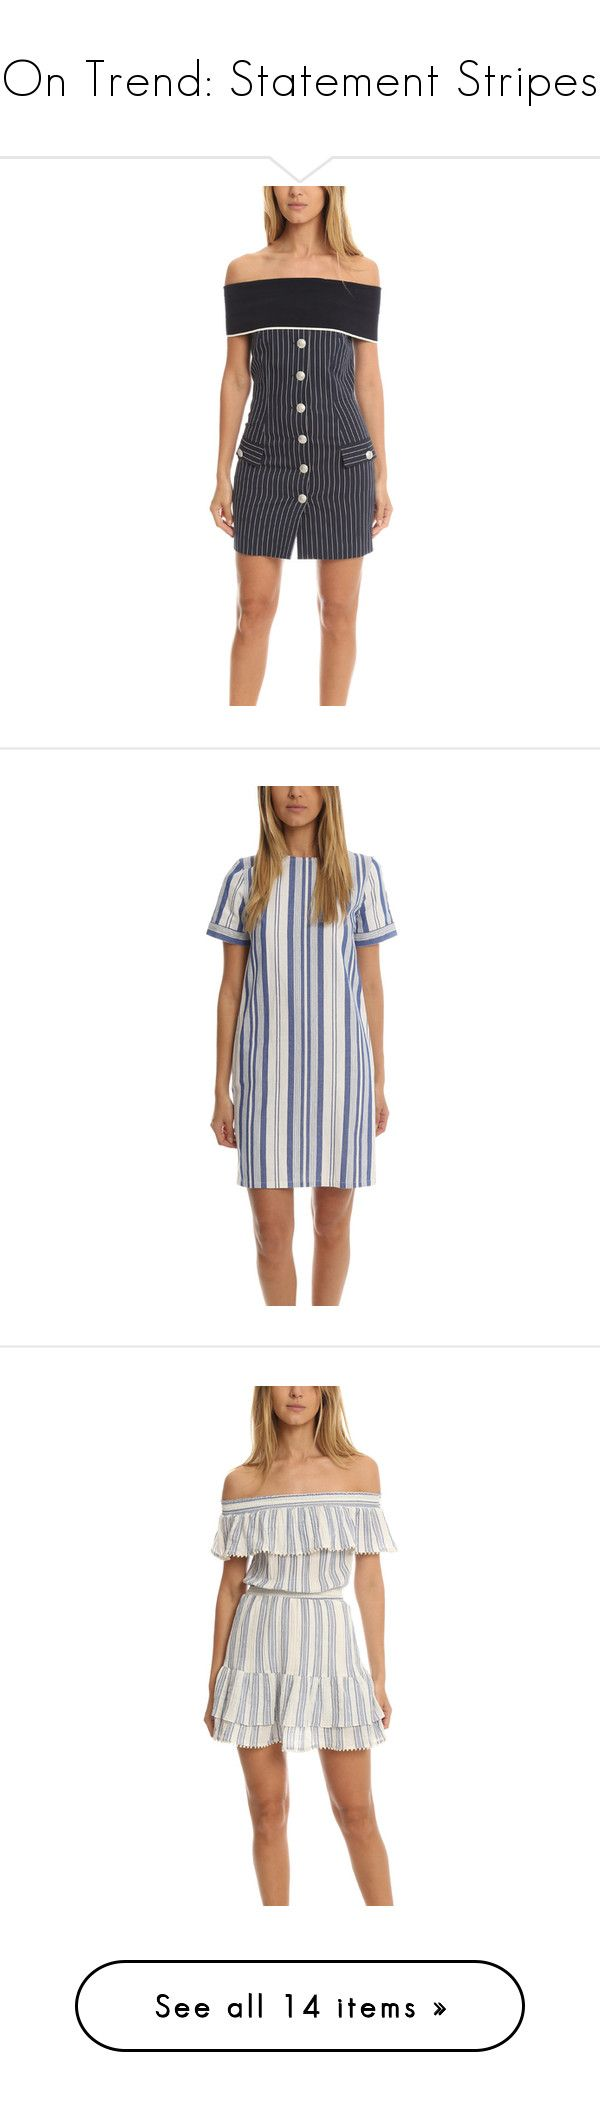 """""""On Trend: Statement Stripes"""" by blueandcream ❤ liked on Polyvore featuring dresses, women, bodycon mini dress, strapless dresses, navy bodycon dress, white dress, mini dress, round neck short sleeve dress, striped cotton dress and stripe dresses"""